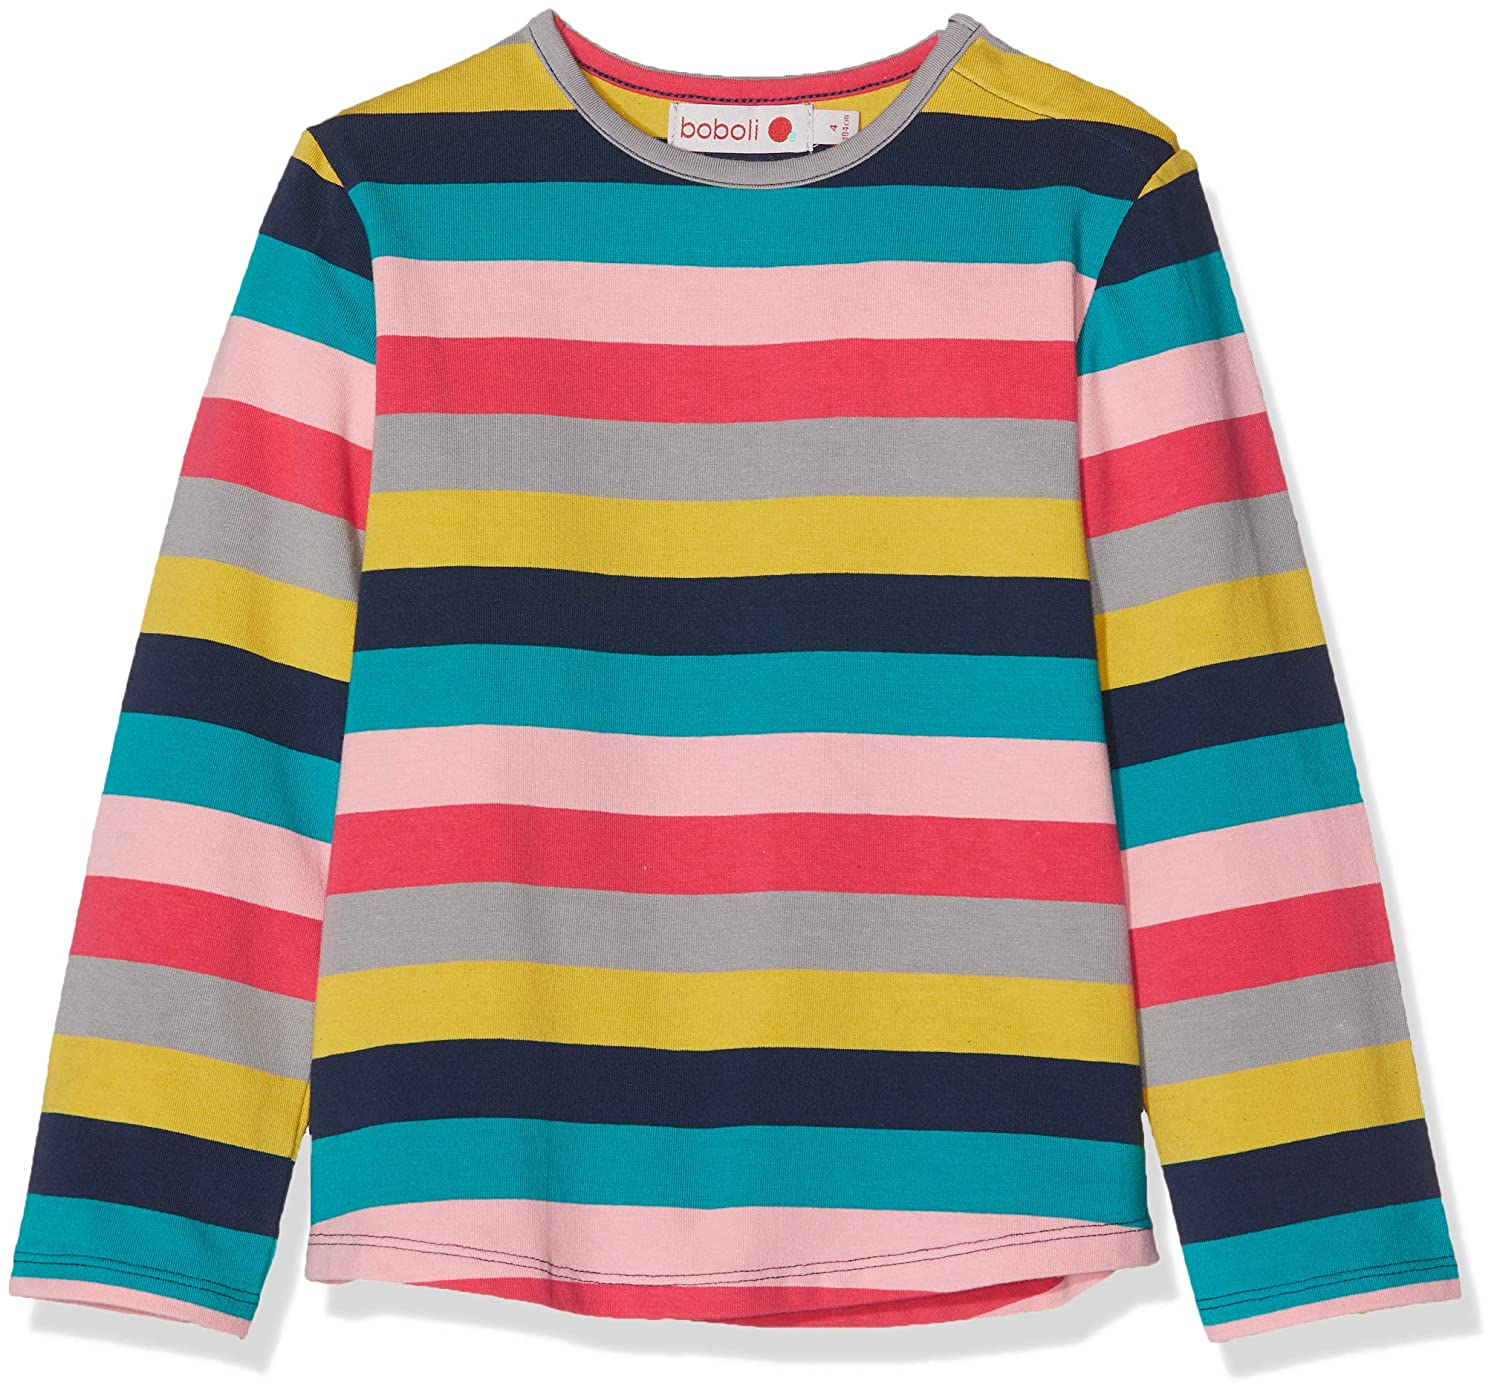 boboli Stretch Knit T-Shirt Striped for Baby Girl Bimba Bóboli 236124